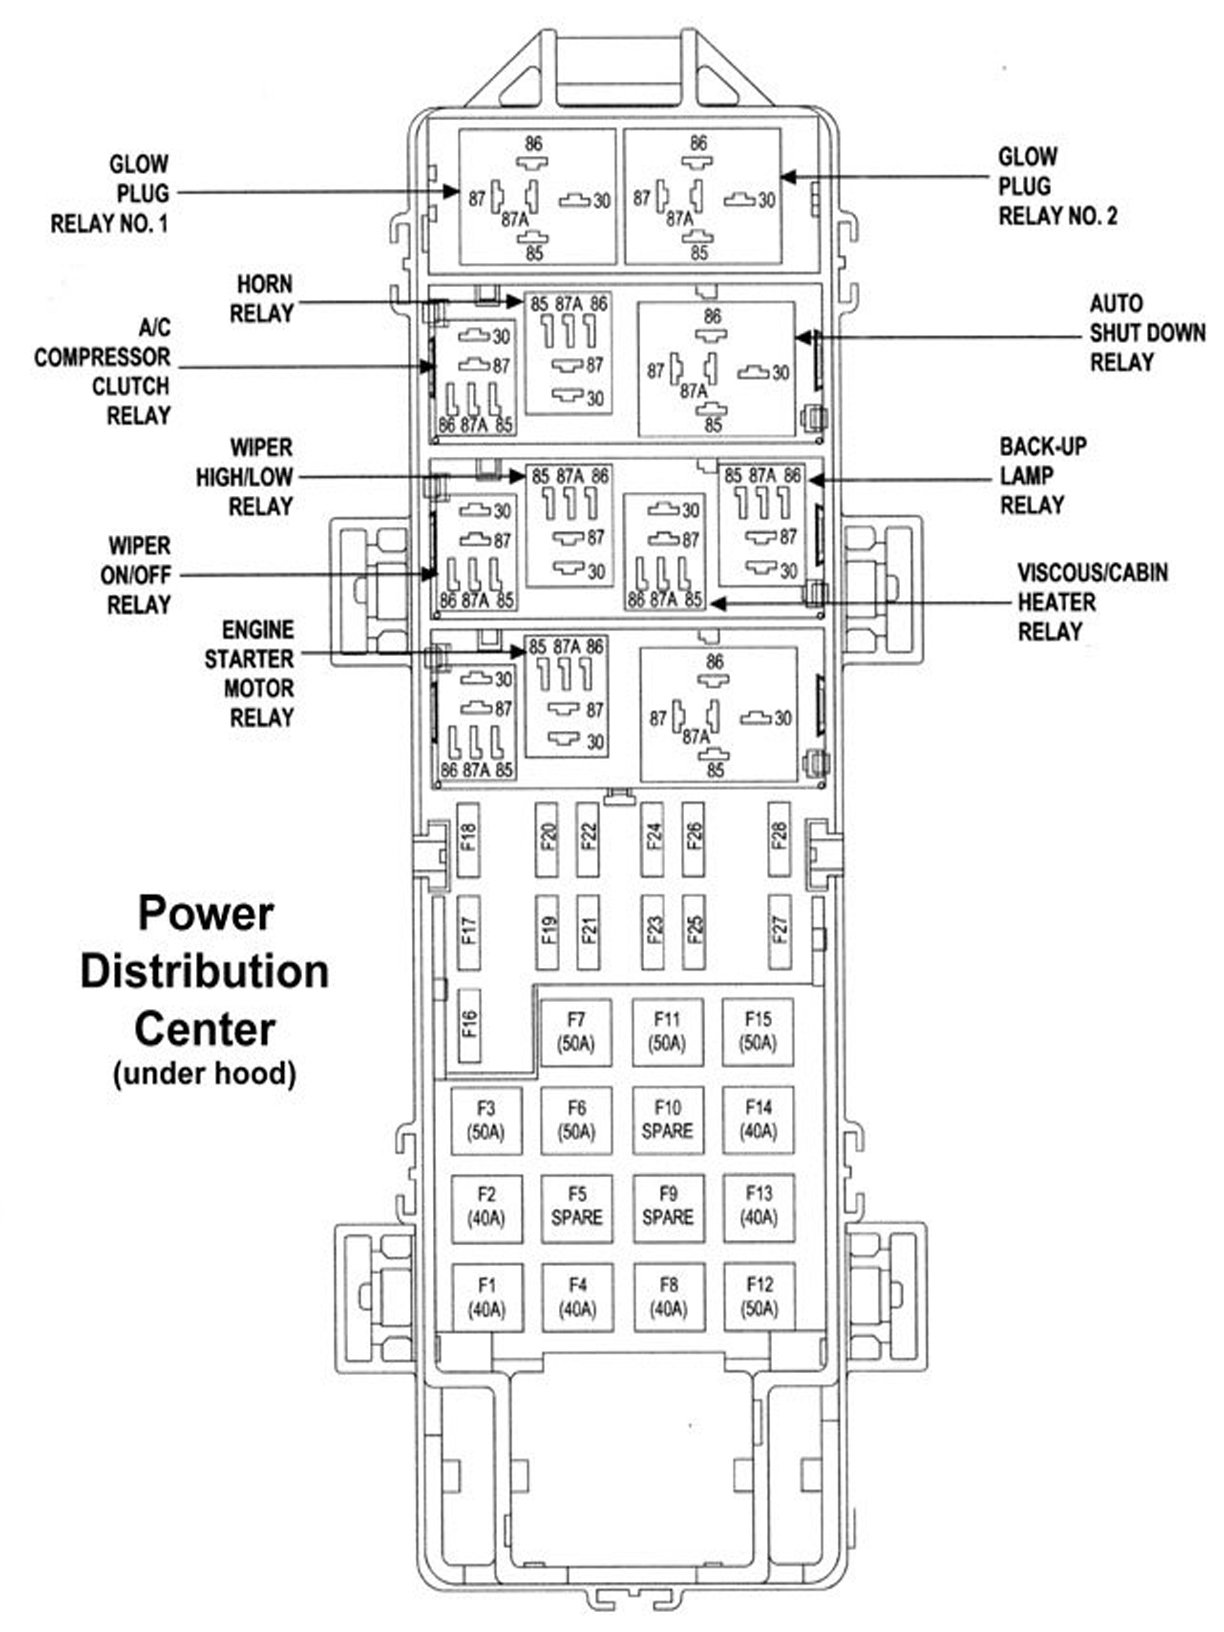 Aaaaaaaaug Fuse Box on 1998 jeep grand cherokee radio wiring diagram